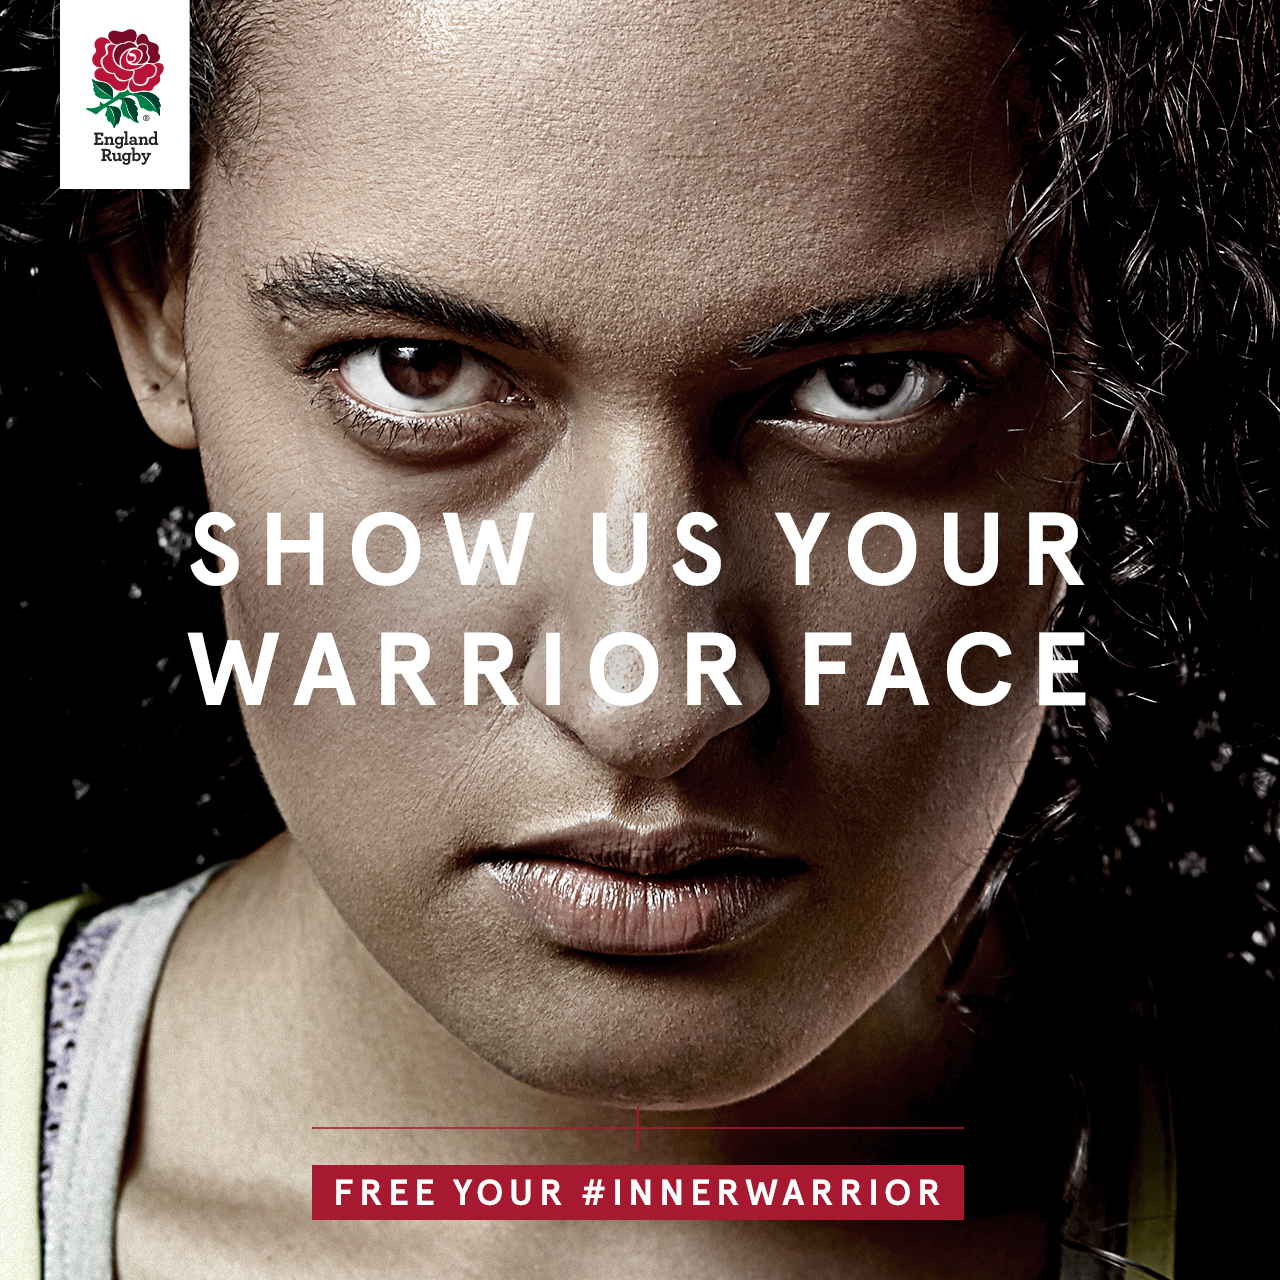 170727 RFU Inner Warrior Face Facebook 1.jpg